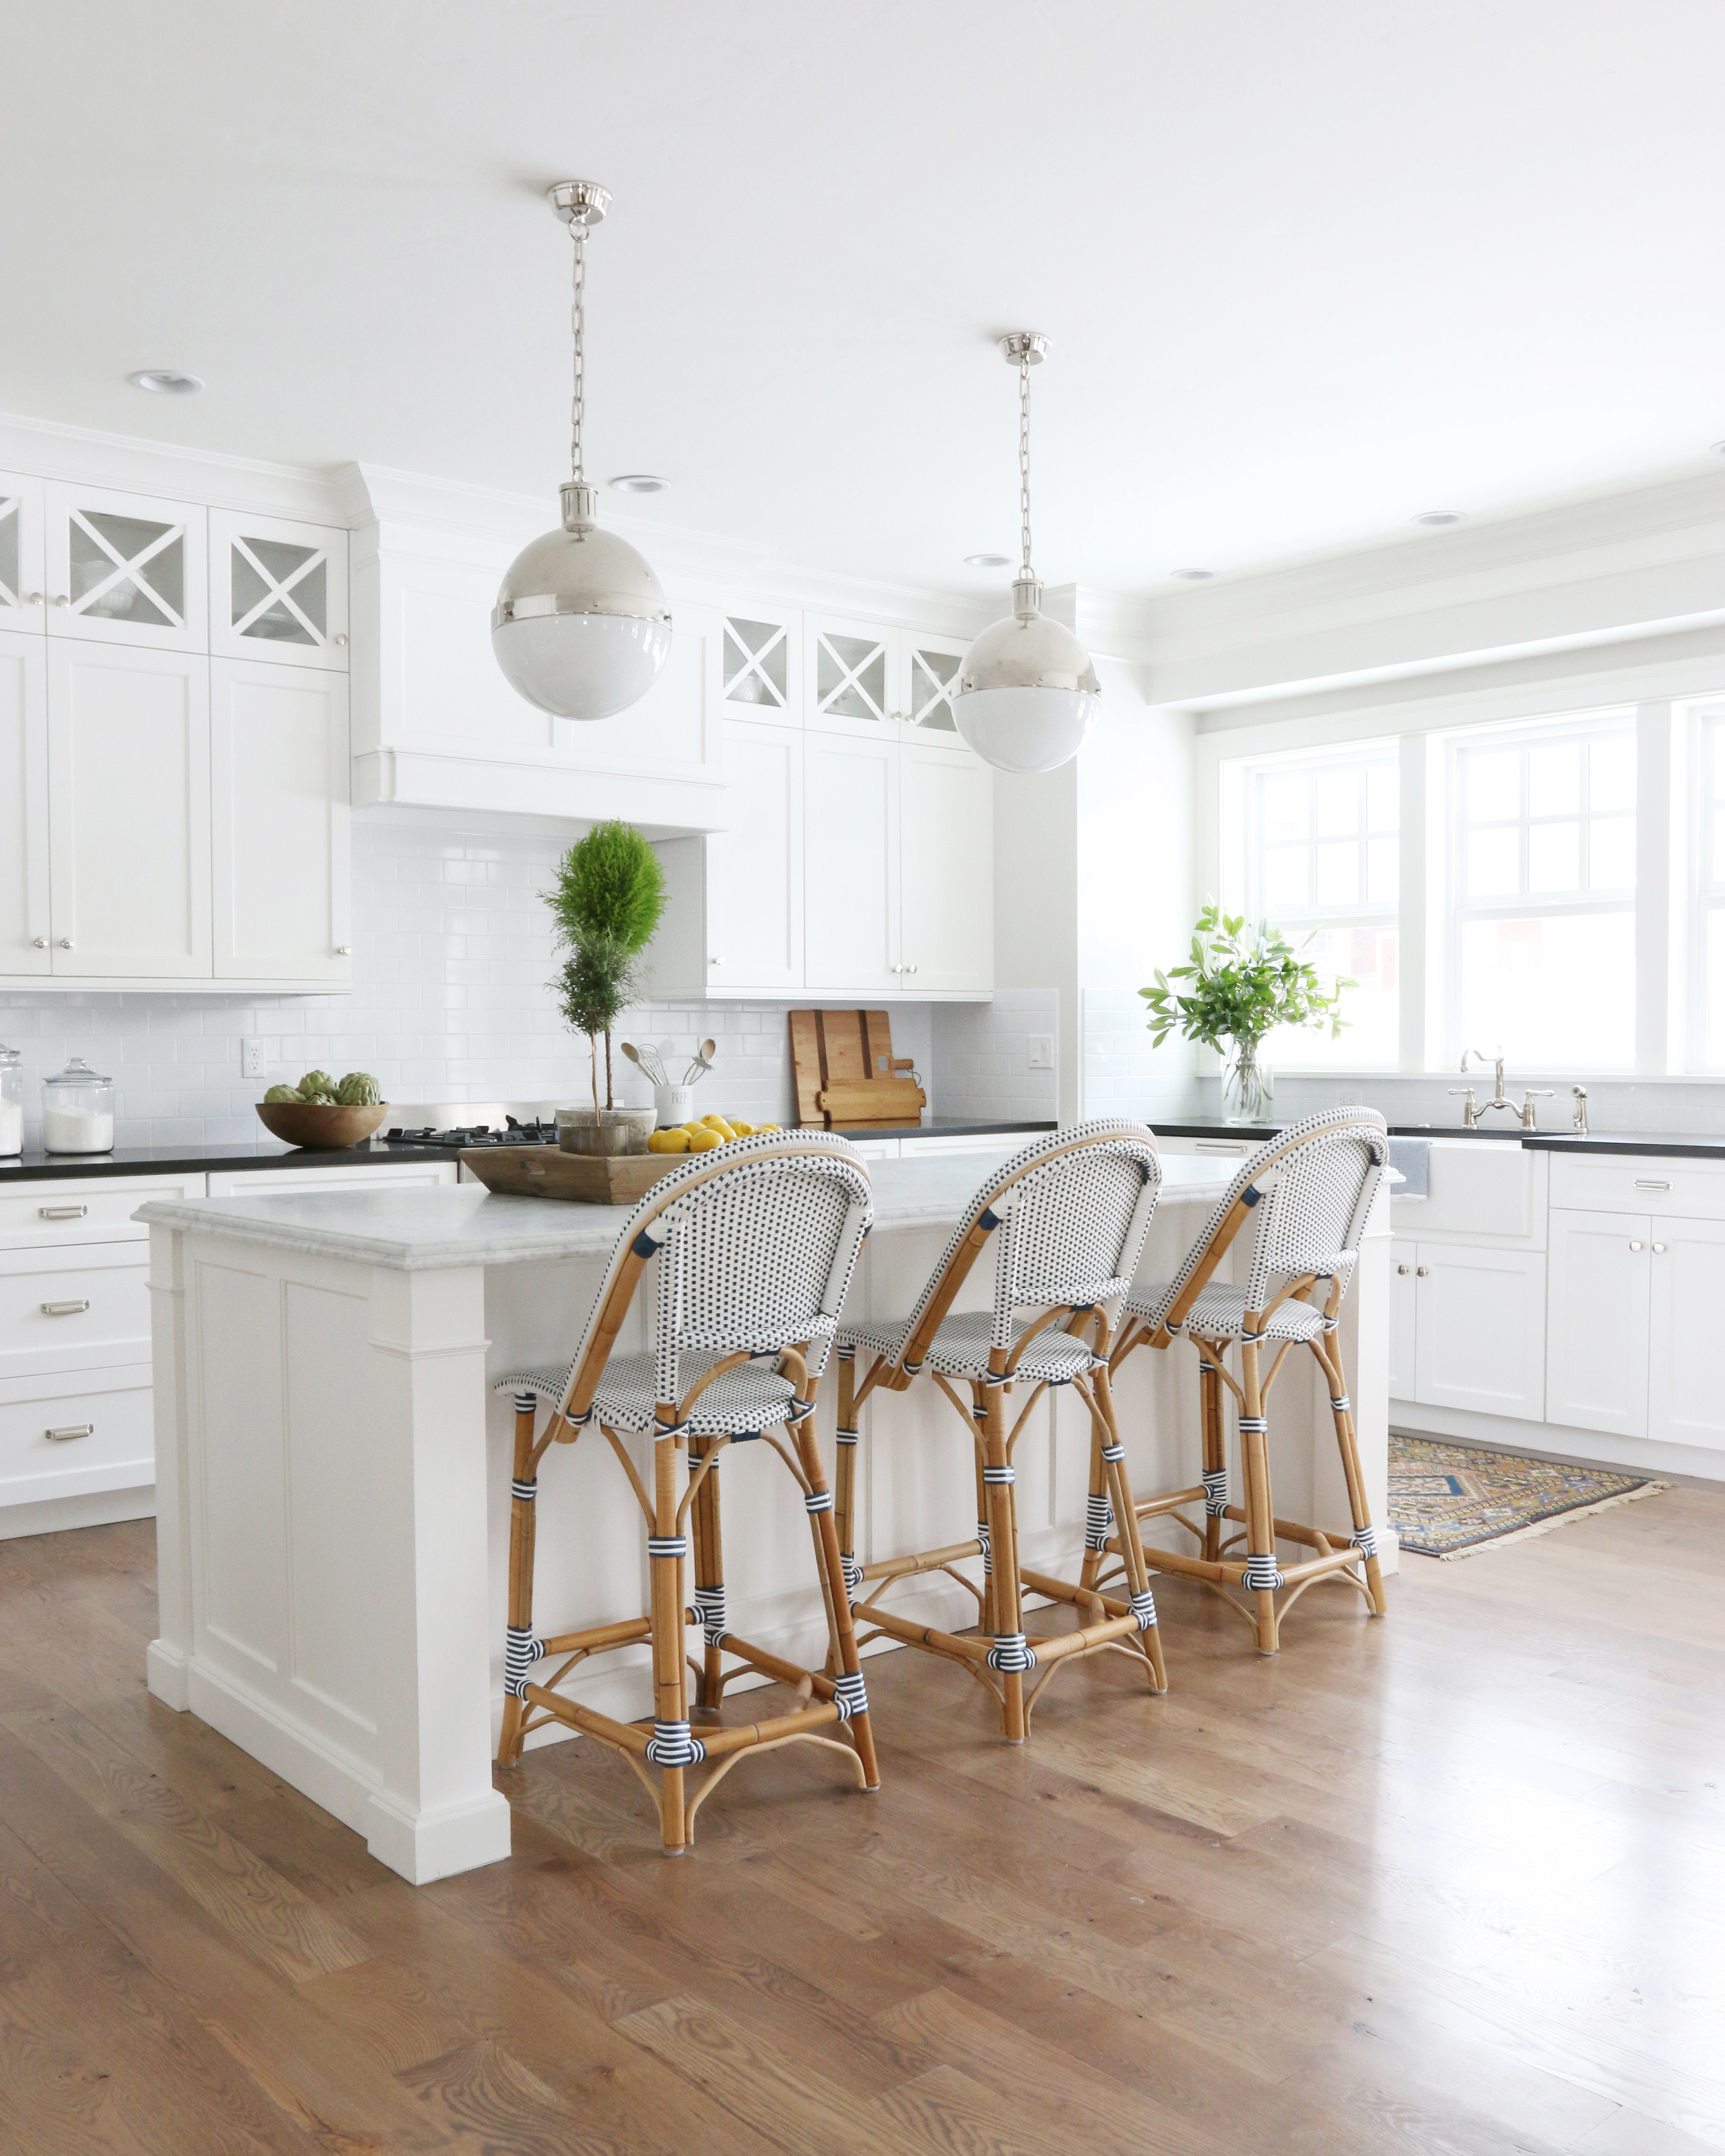 Classic White Kitchen with Bistro Stools || Studio McGee